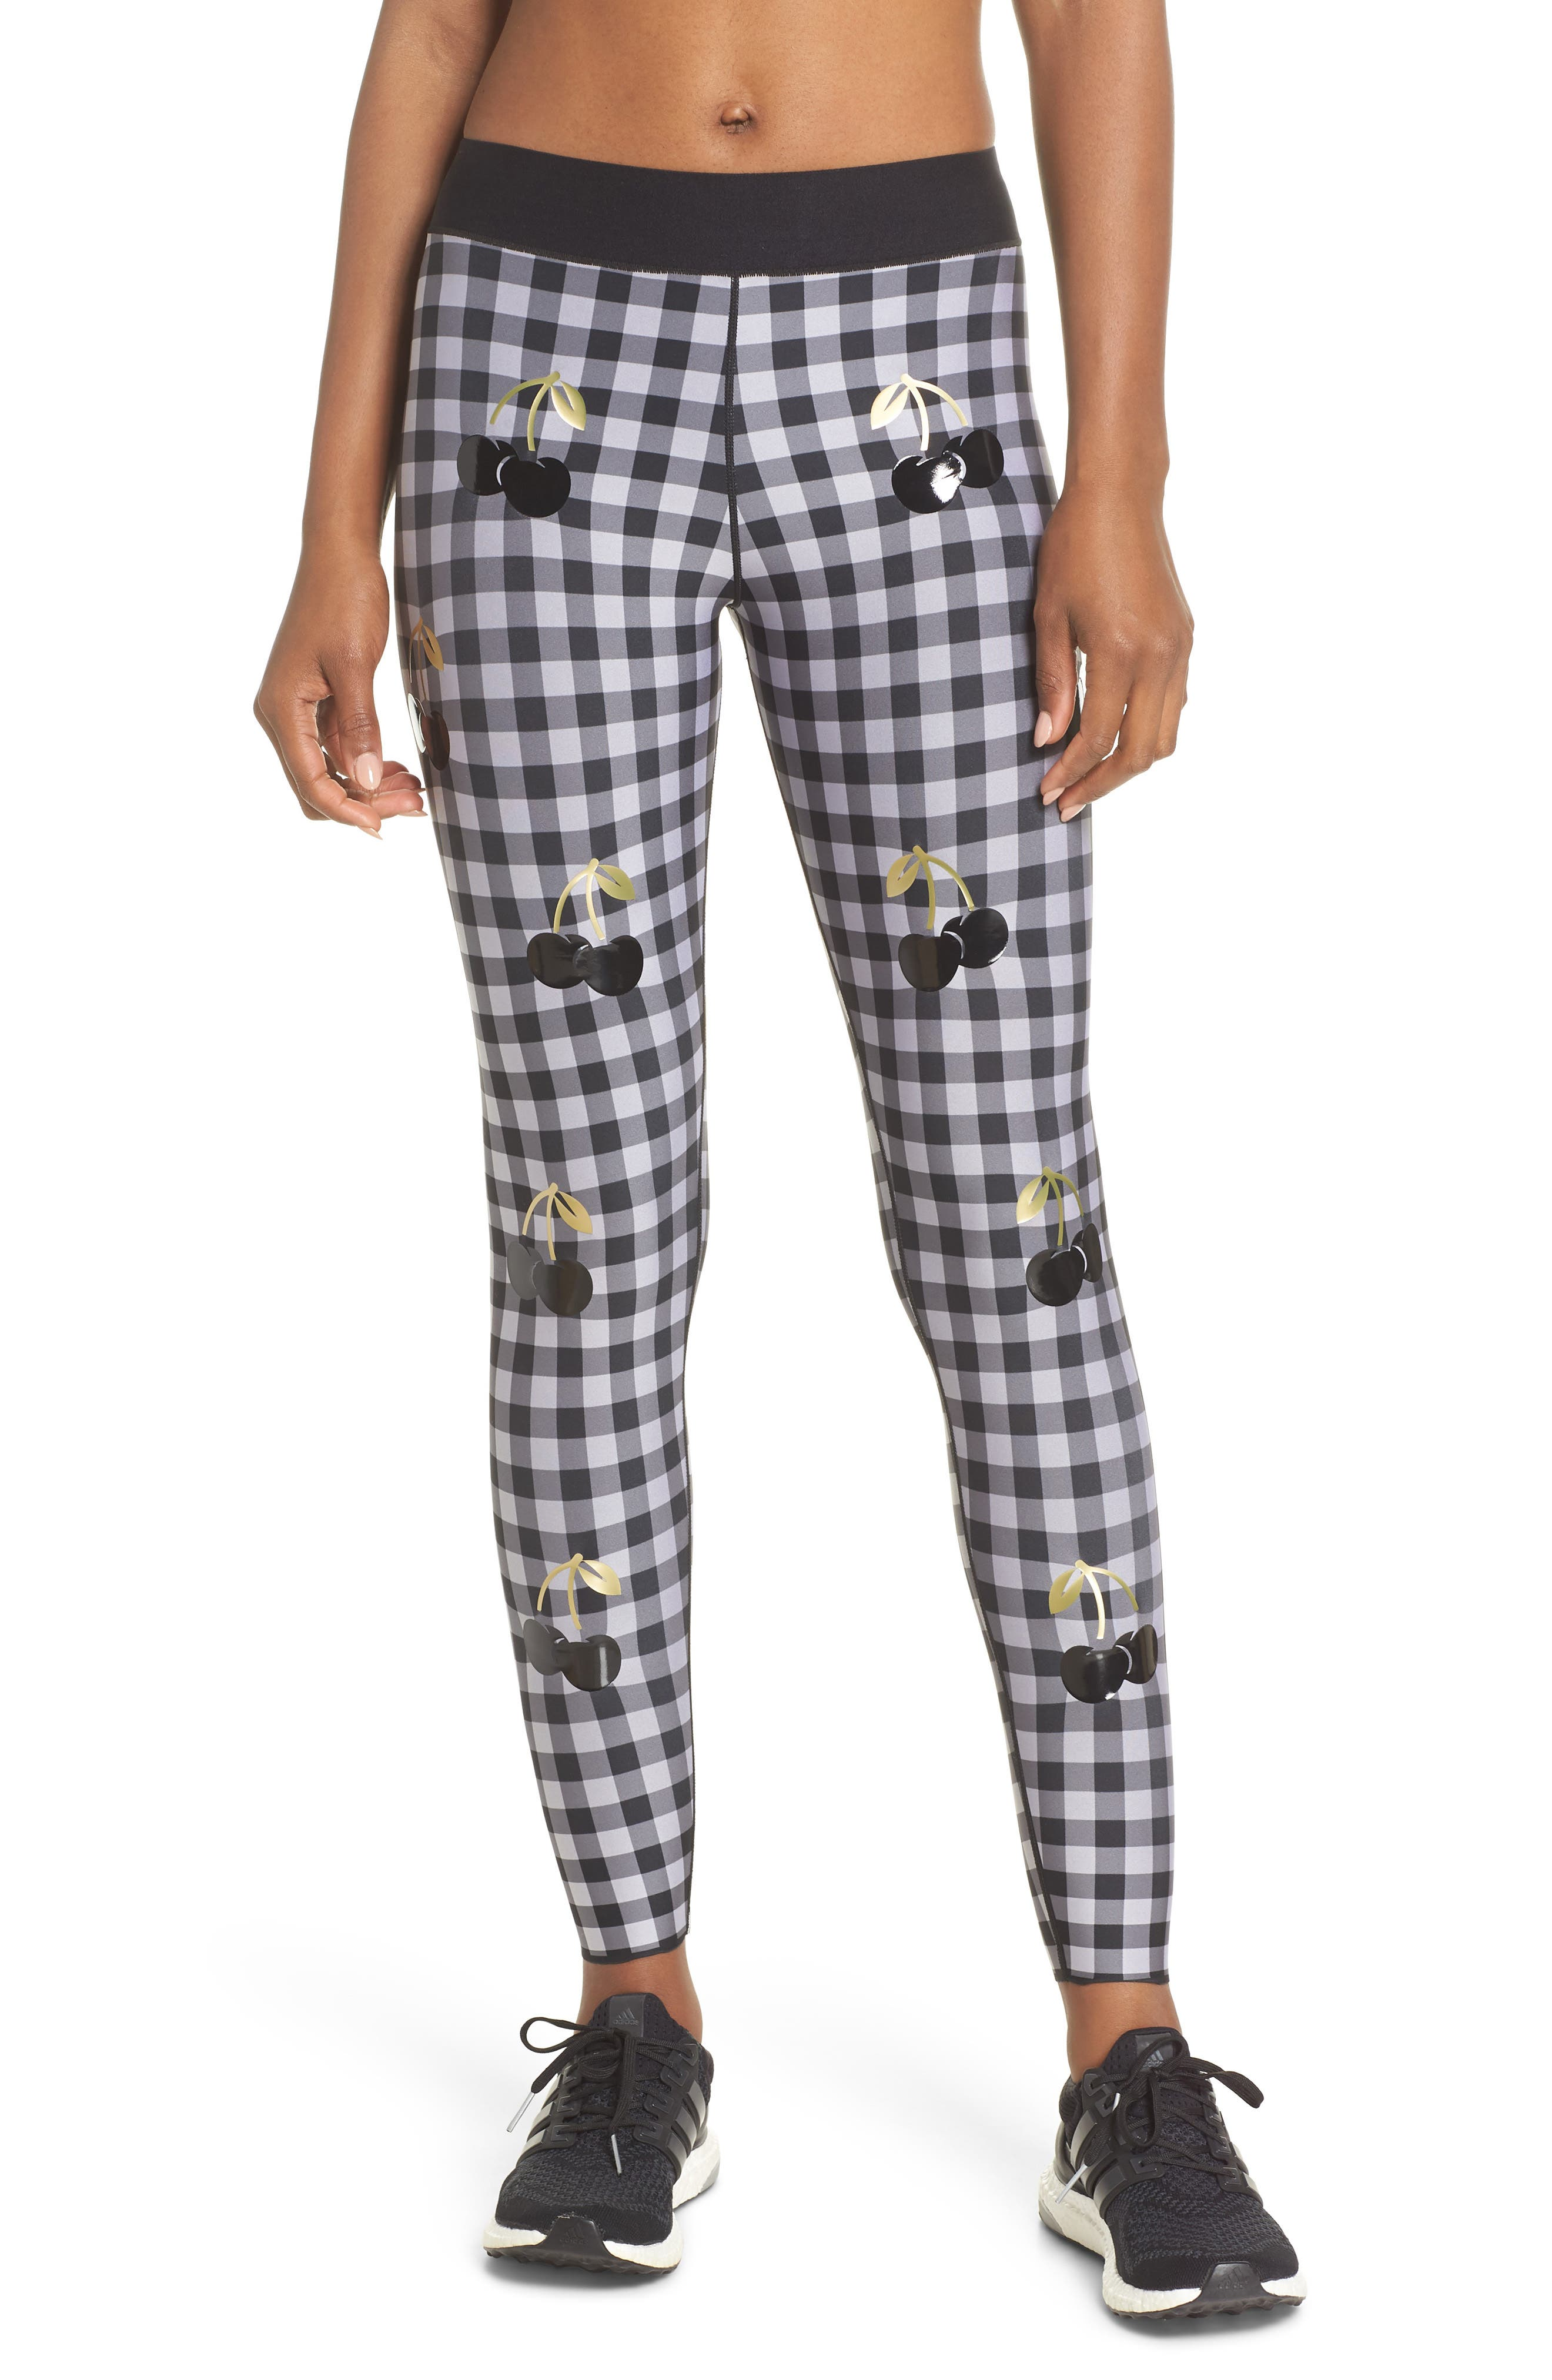 Ultra Cherry Check Leggings,                         Main,                         color, Nero/ Patent Nero